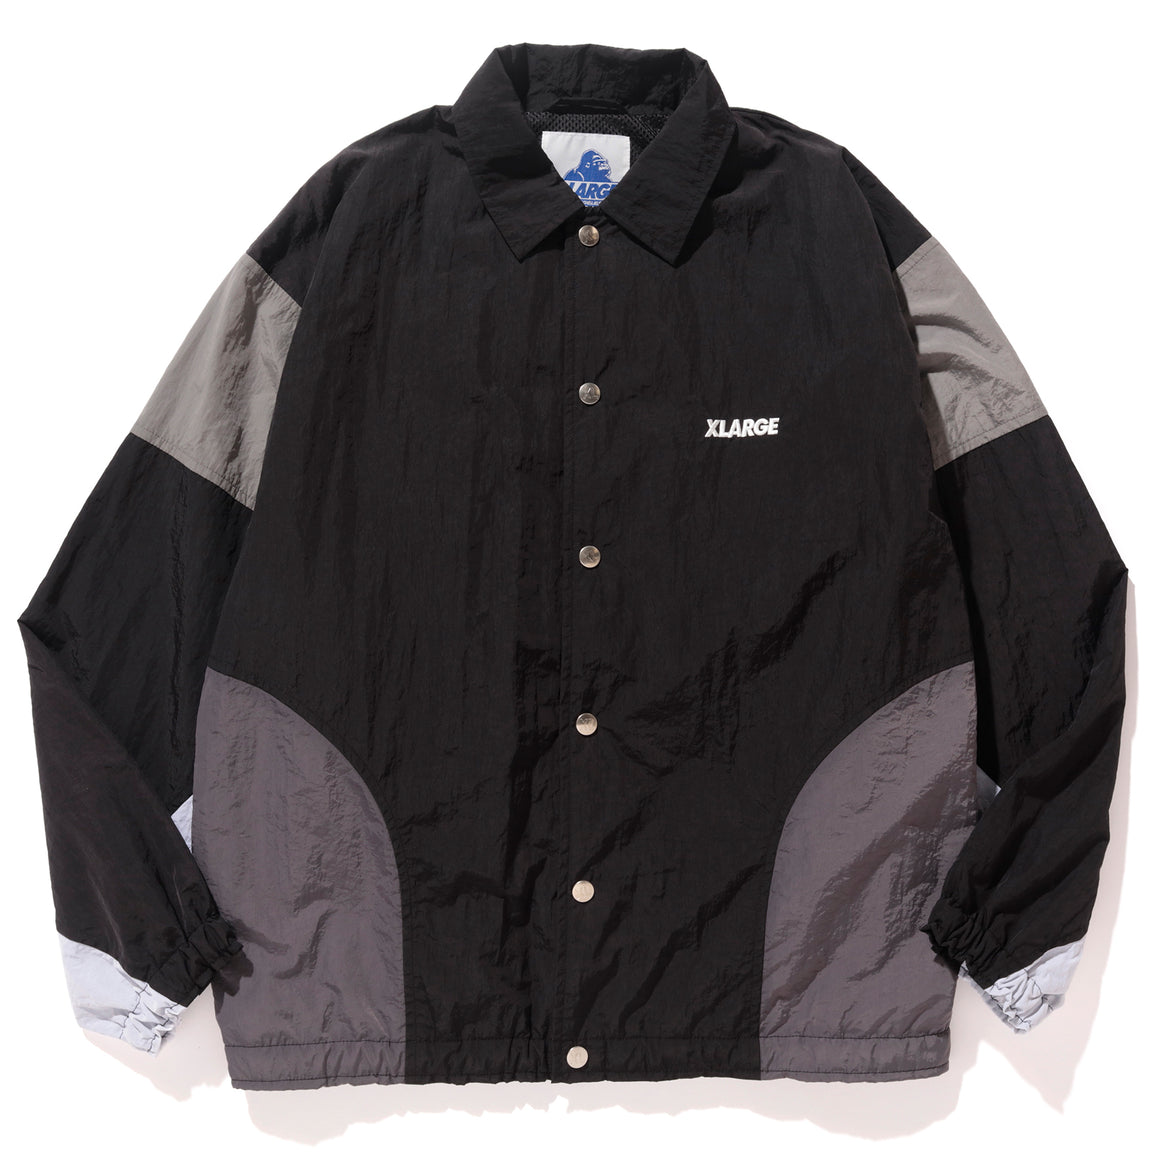 NYLON TEAM JACKET - X-Large Clothing